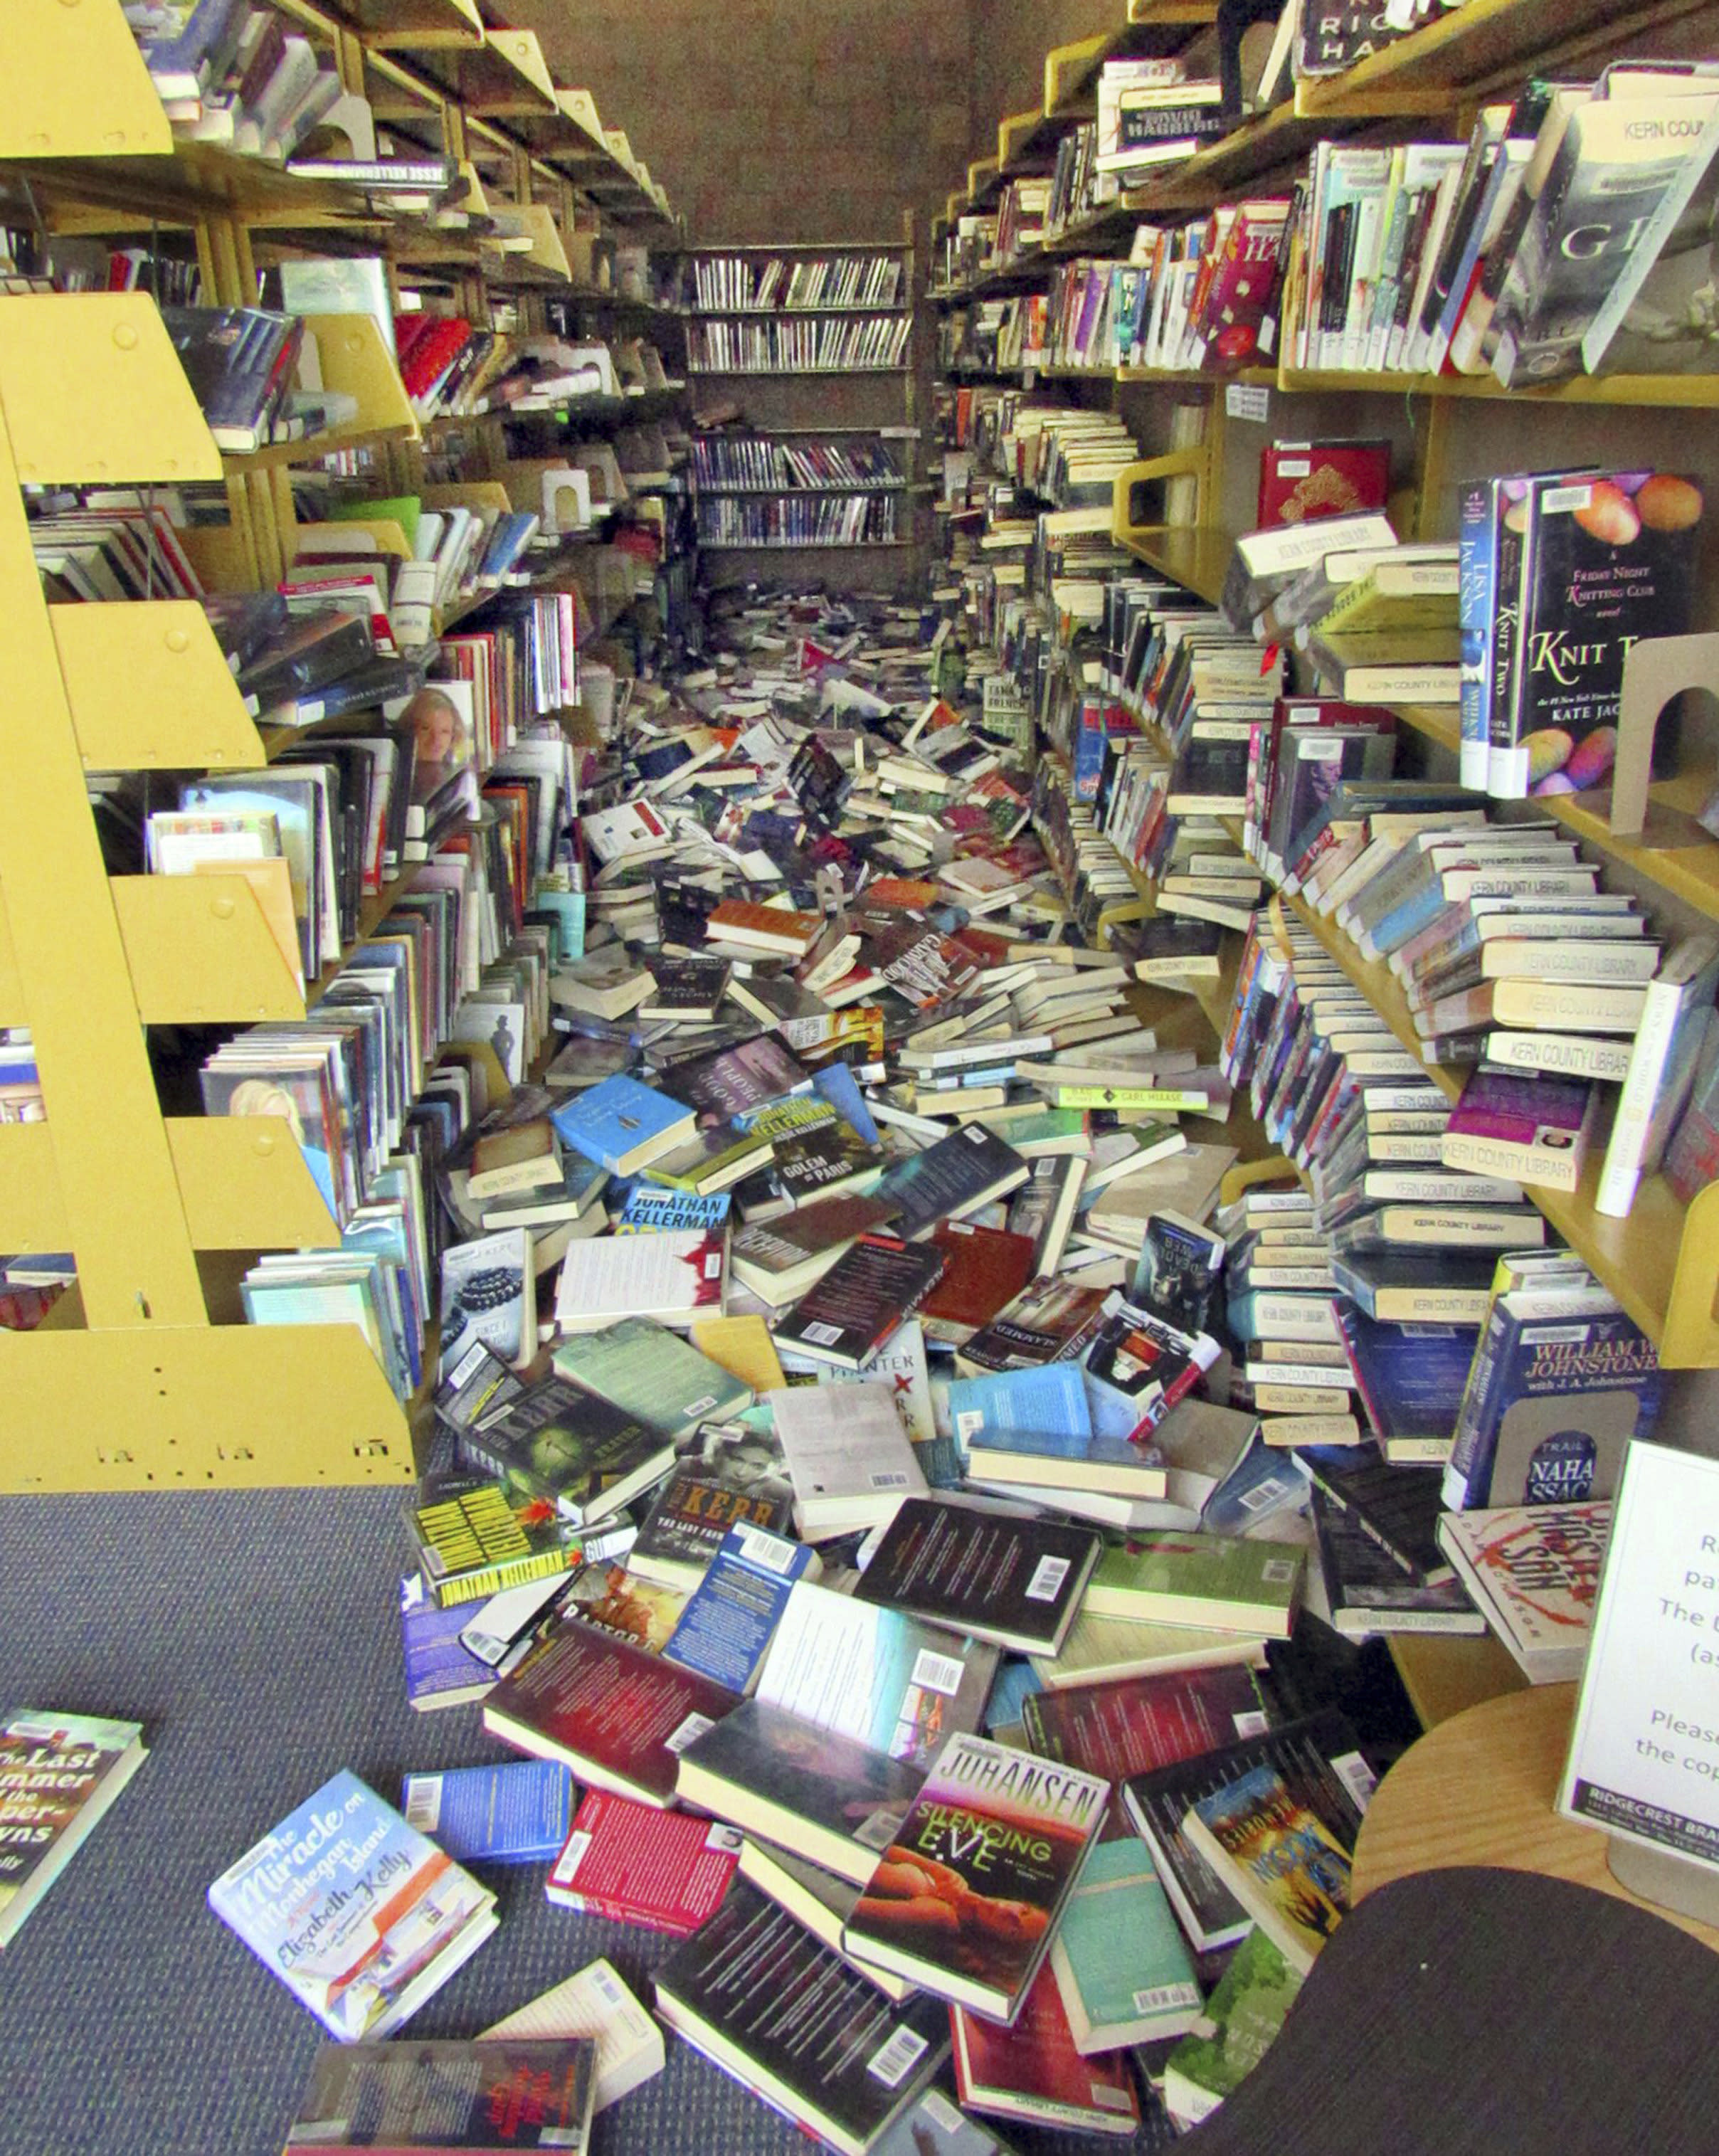 This Thursday, July 4, 2019 photo provided by Richard Wagner shows hundreds of books that have tumbled off shelves at the Kern County Library in Ridgecrest, Calif., following a 6.4 magnitude earthquake that shook the region about 150 miles (240 kilometers) northeast of Los Angeles. Aftershocks from Southern California's largest earthquake in 20 years rumbled beneath the Mojave Desert on Friday as authorities tallied damage in the sparsely populated region. (Richard Wagner/Kern County Library via AP)